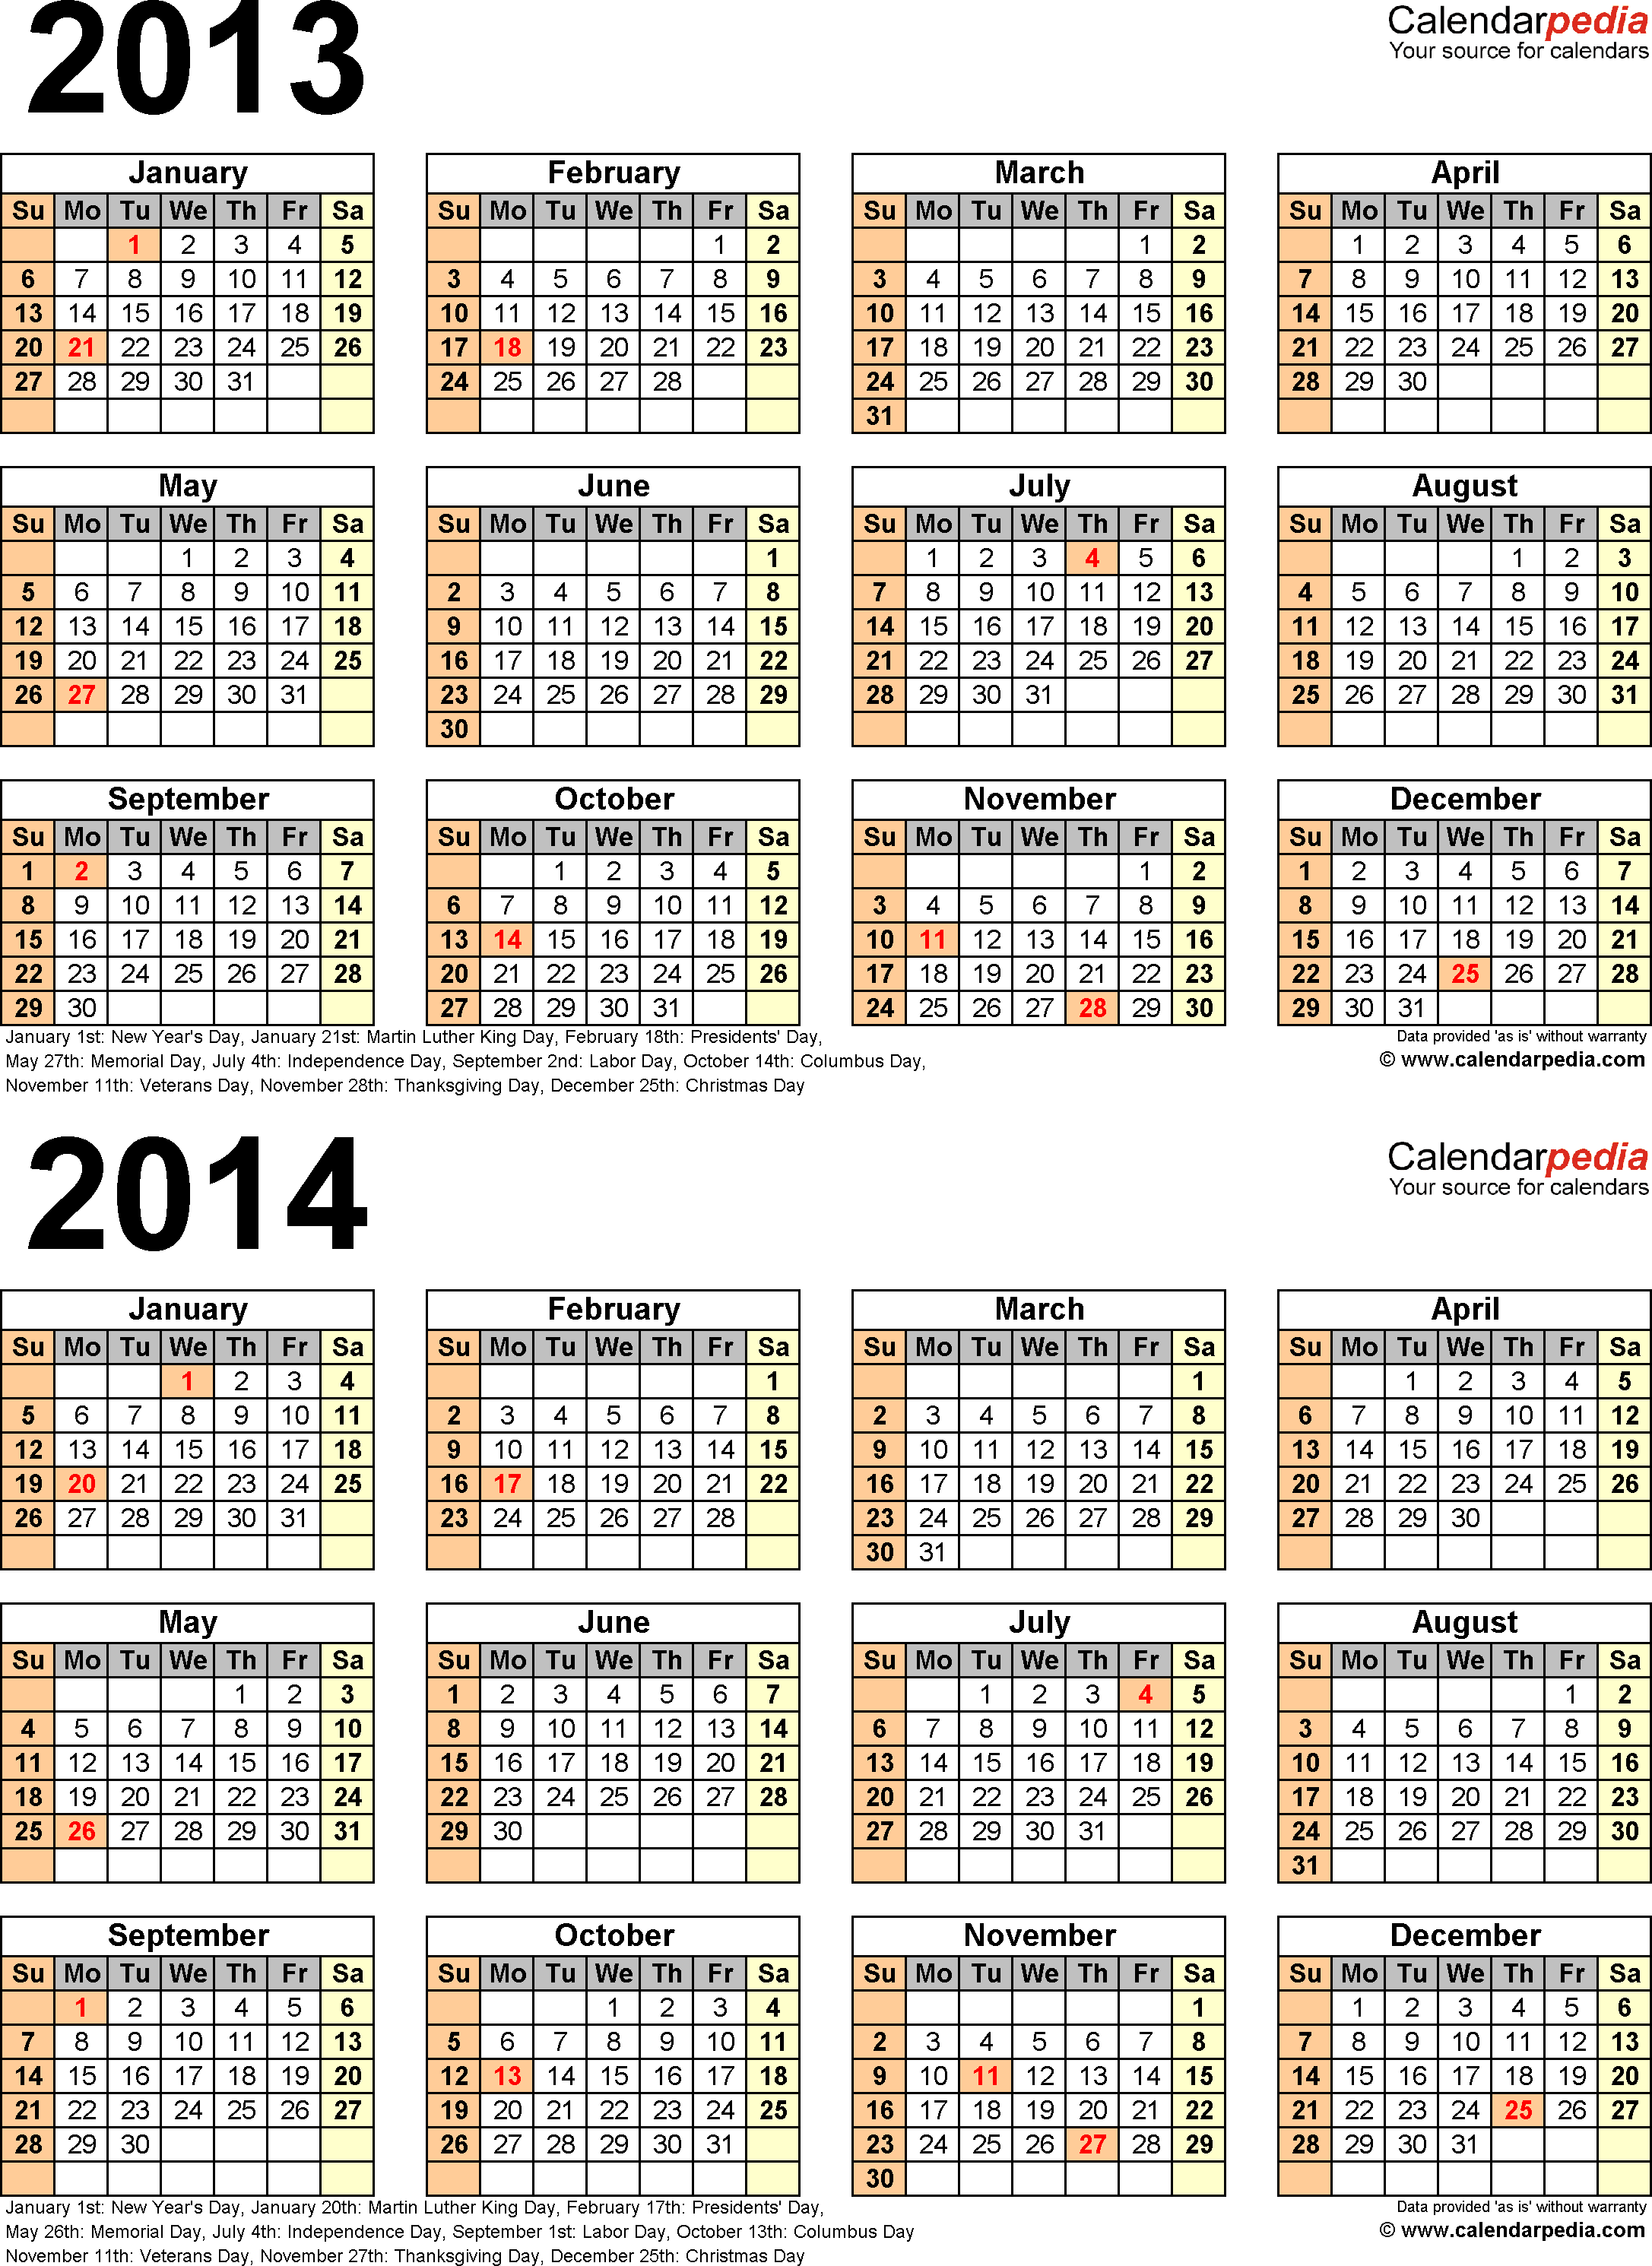 Template 4: Word template for two year calendar 2013/2014 (portrait orientation, 1 page)